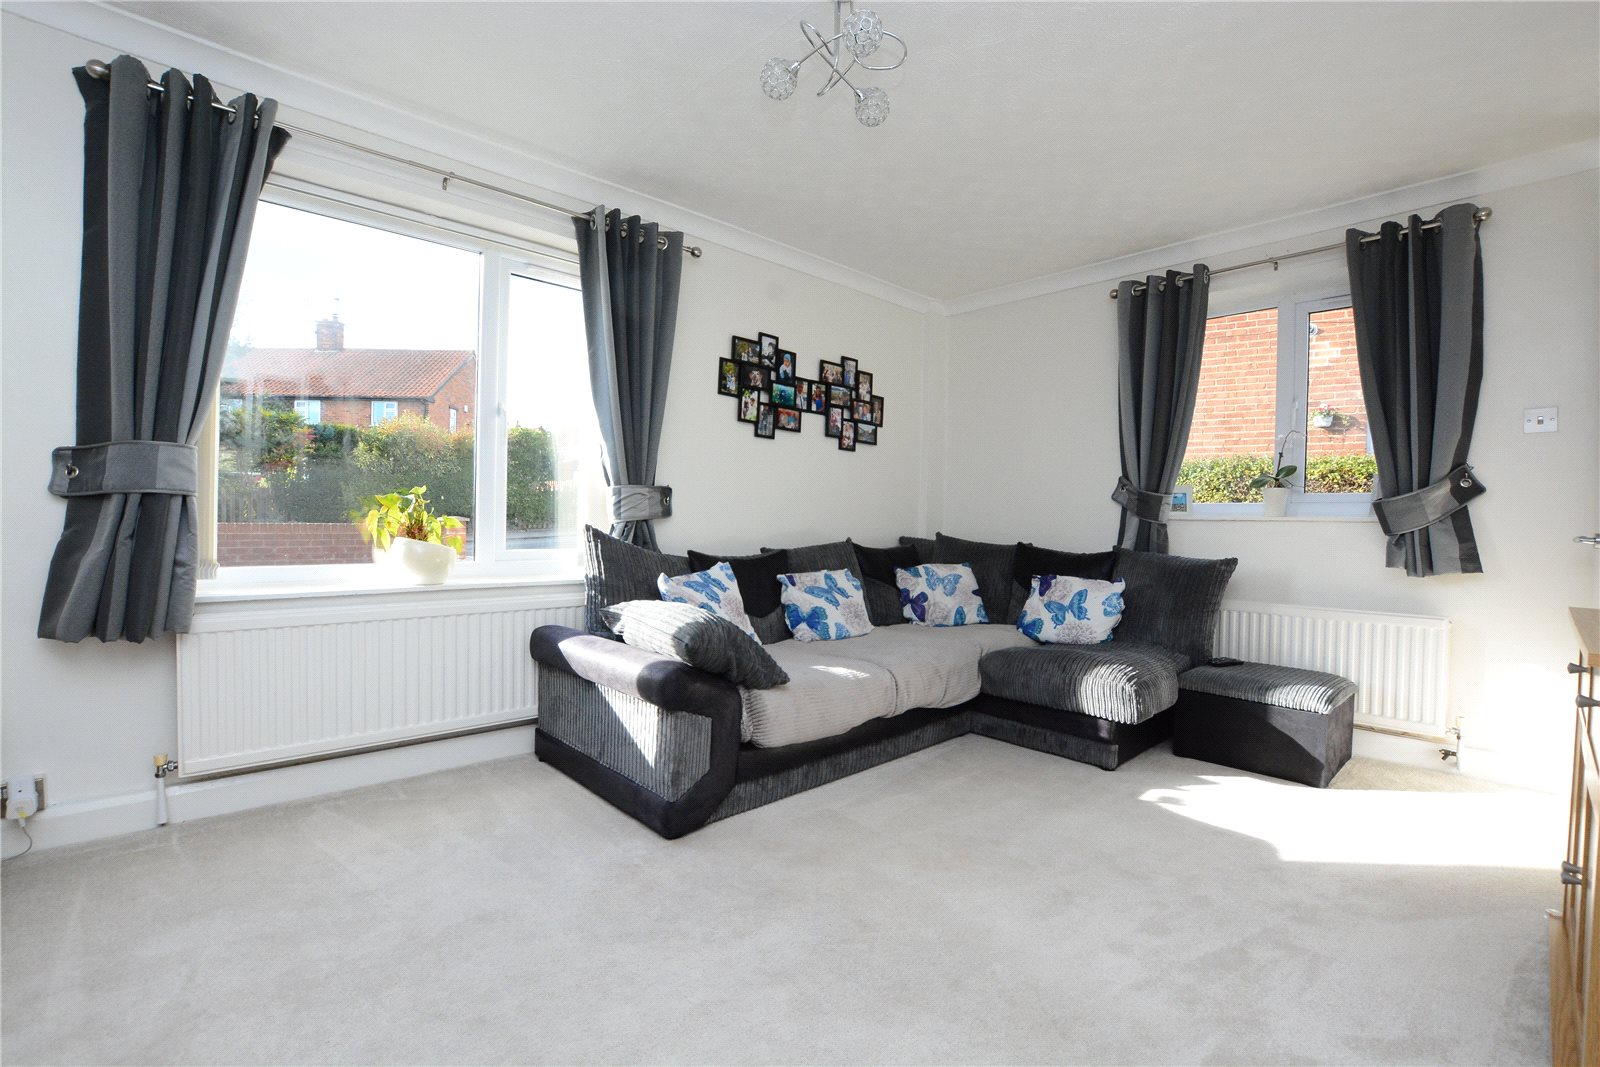 property for sale in Wetherby, interior of family lounge, grey corner sofa